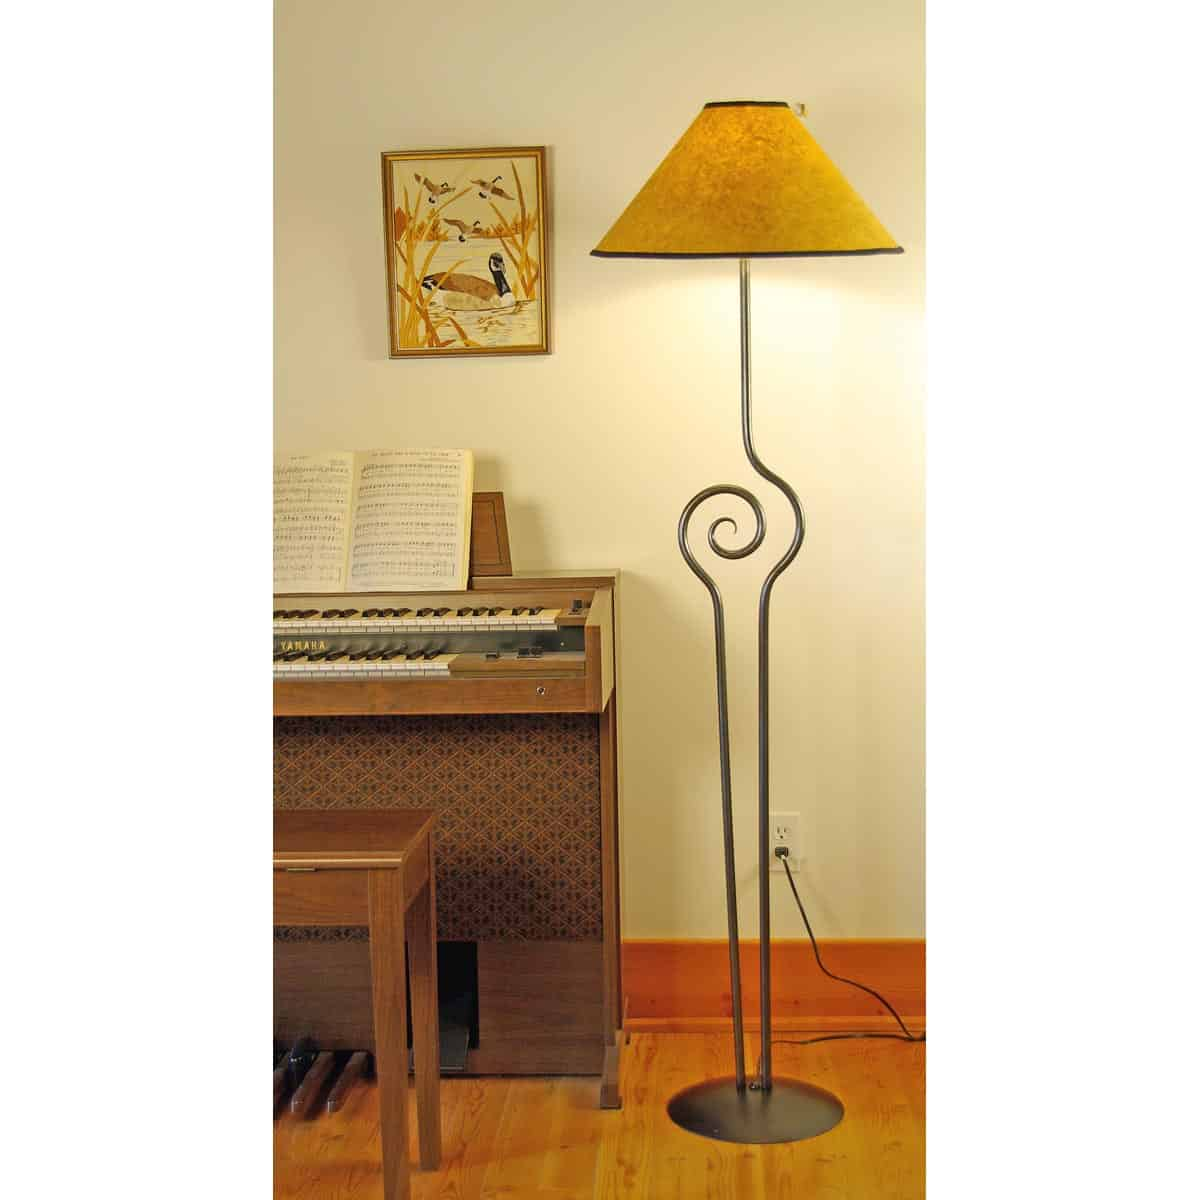 Cyclone Floor Lamp, plain